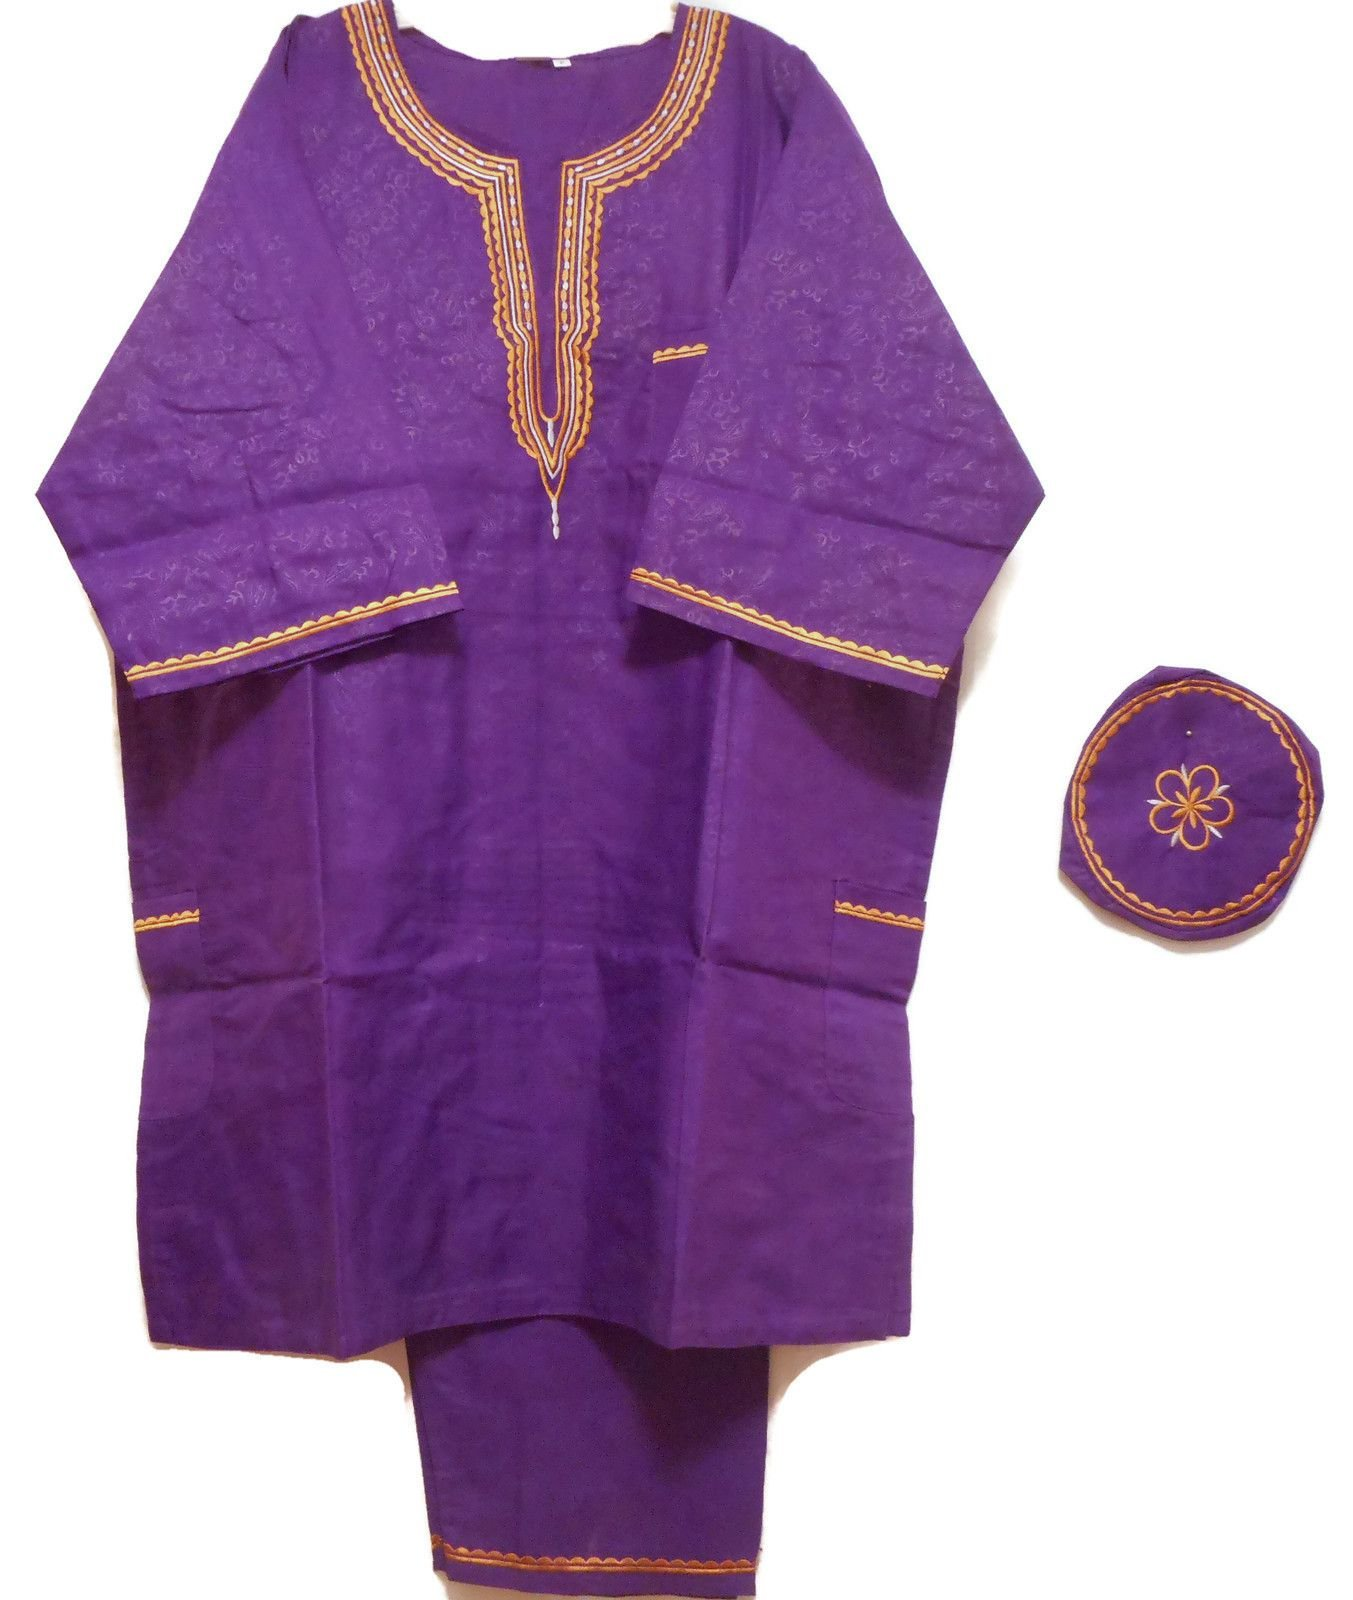 DecoraApparel African Traditional Men Suit Ethnic Clothing Brocade Pant Set Plus Size (Purple Gold)